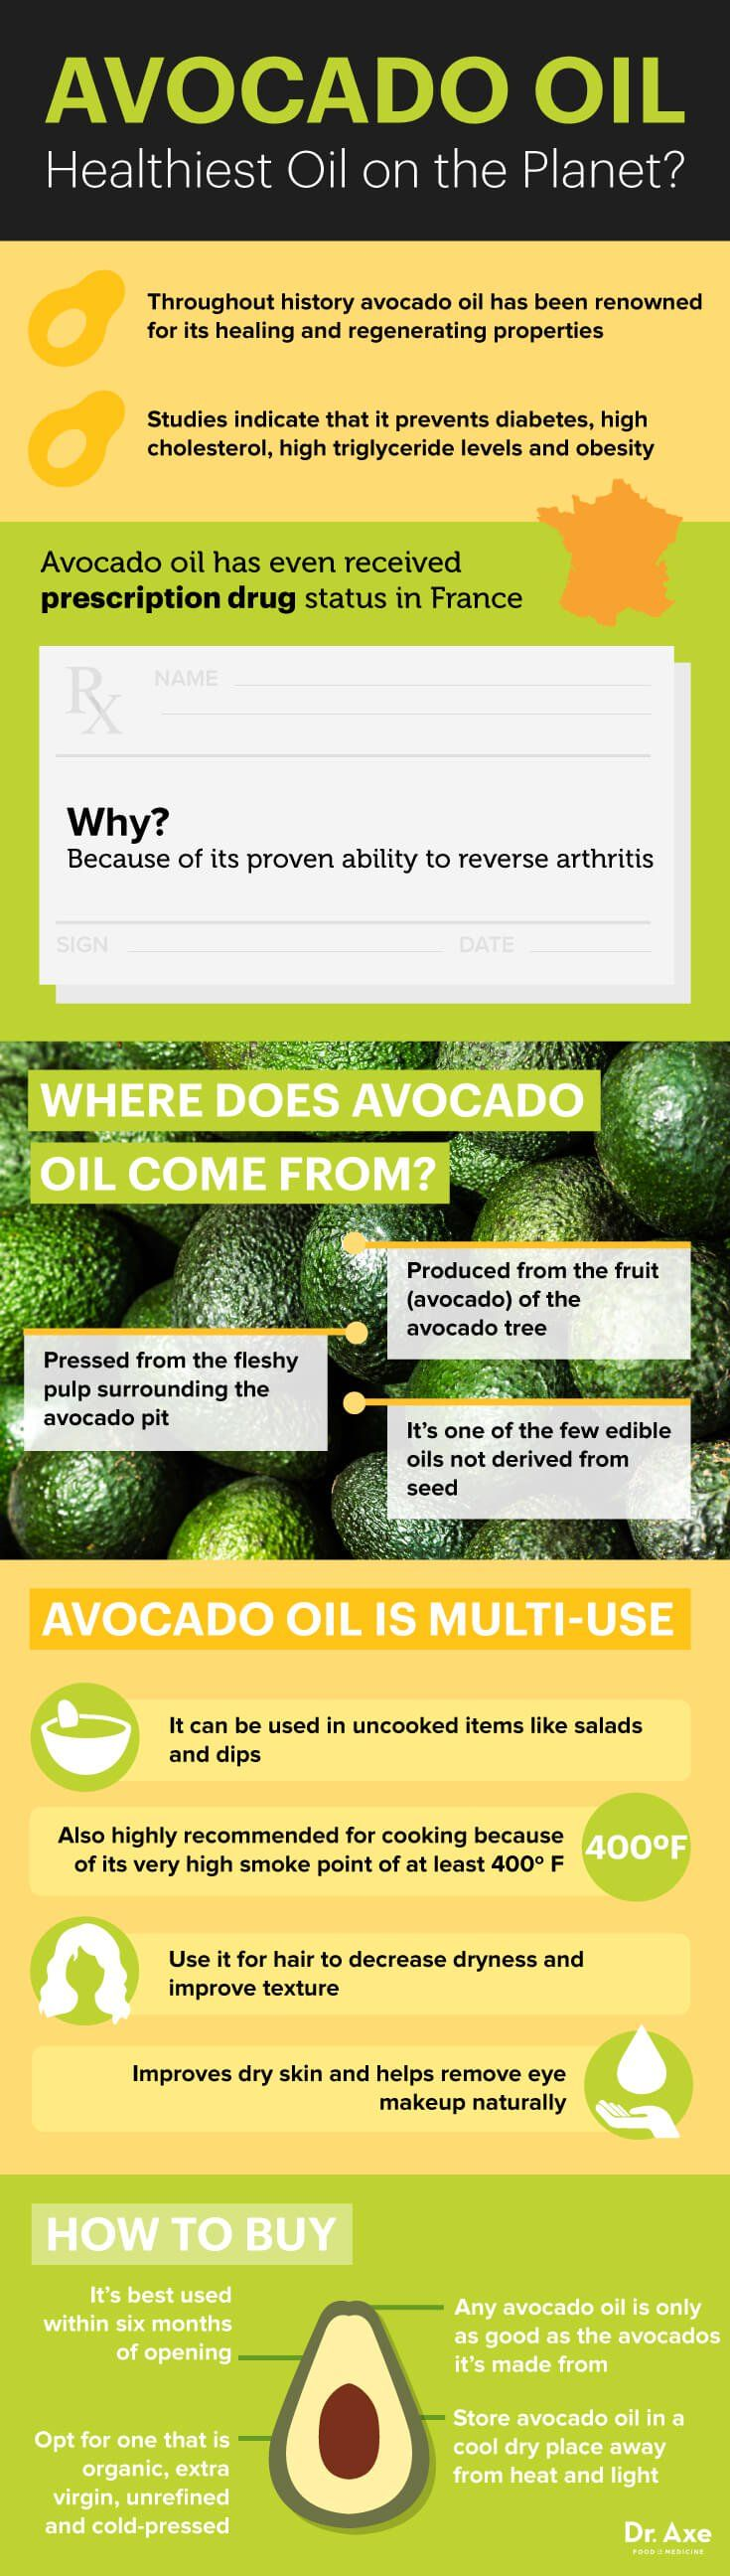 Avocado oil is one of the healthiest to use.